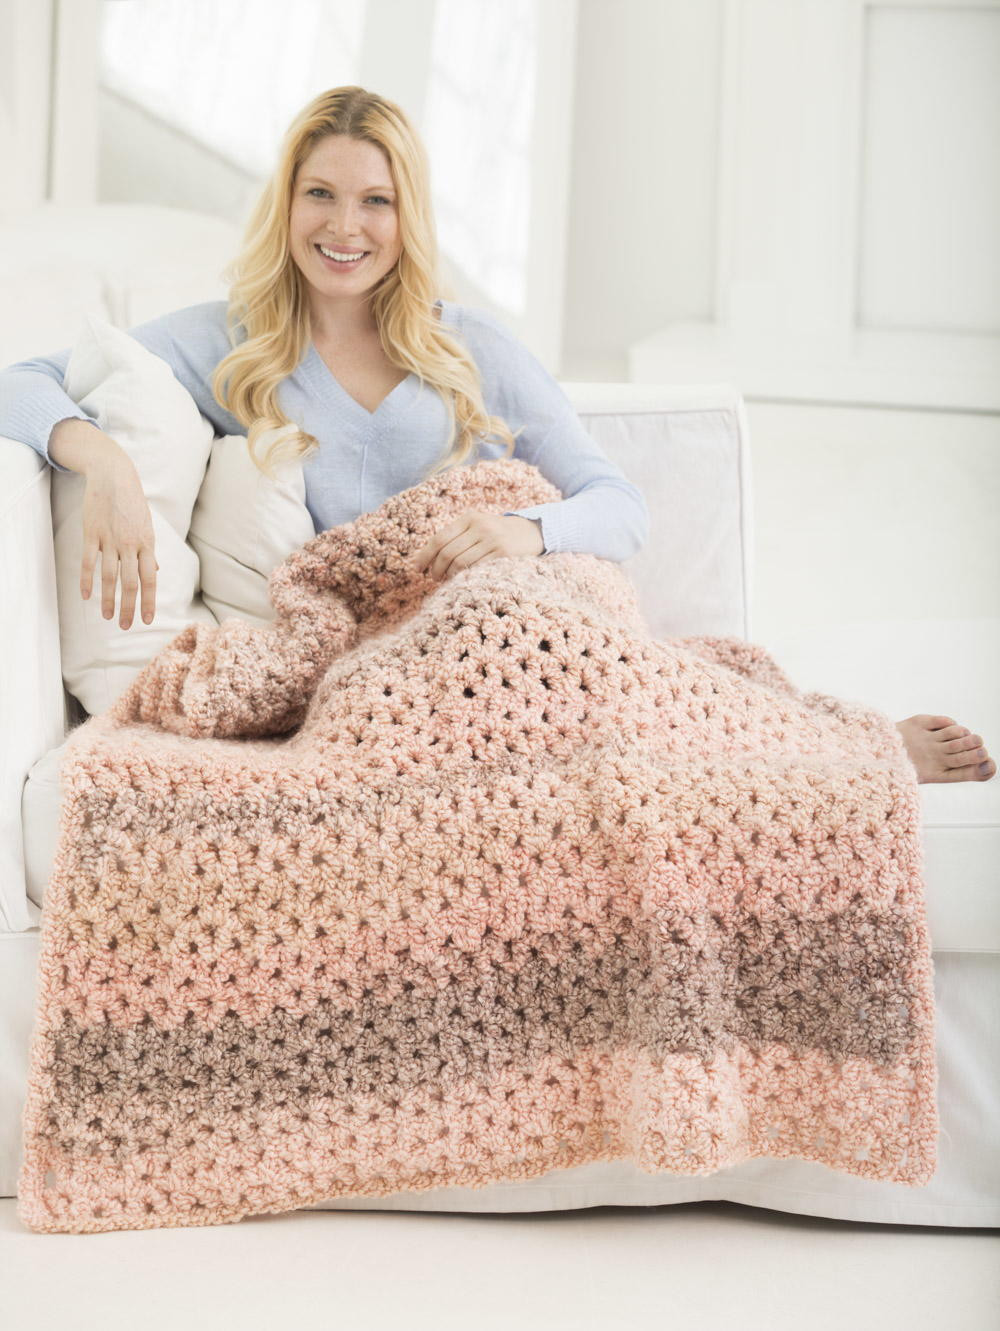 Crochet Projects Inspirational Lazy Girl Crochet Blanket Of Unique 44 Pictures Crochet Projects